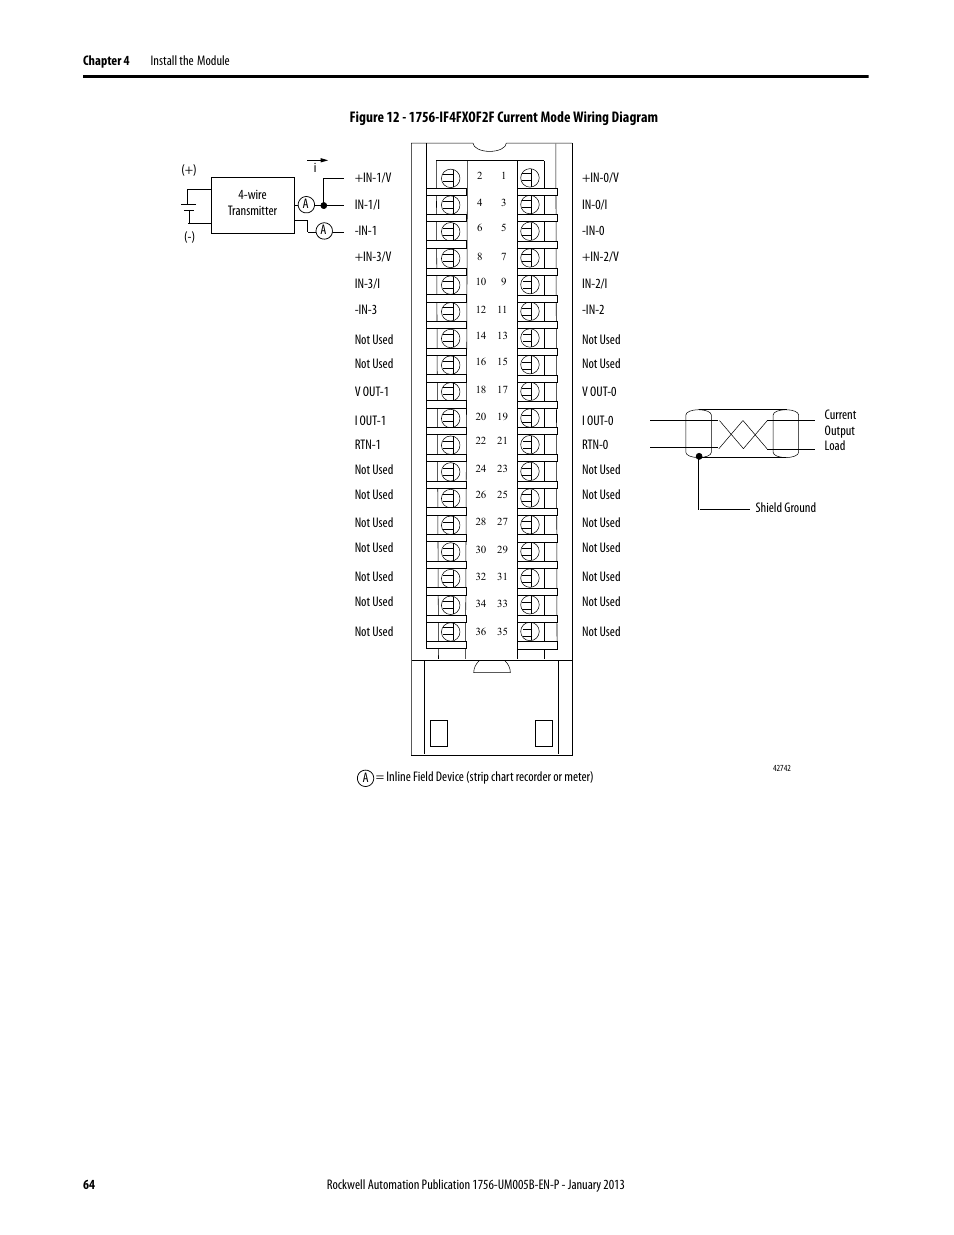 21 New 1769-If8 Wiring Diagram